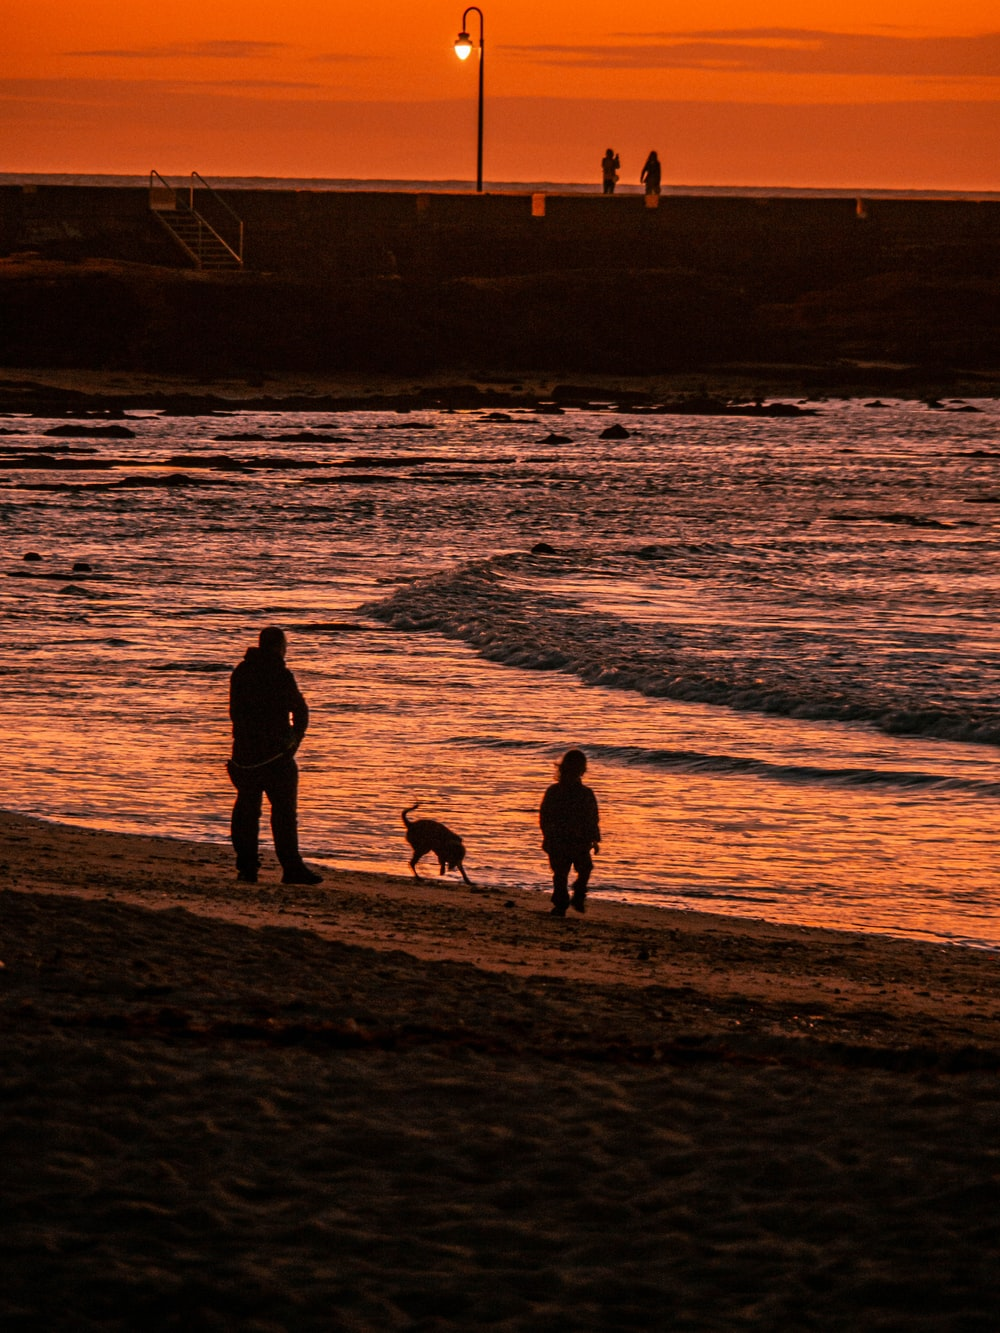 man standing near dog and child near seashore during golden hour